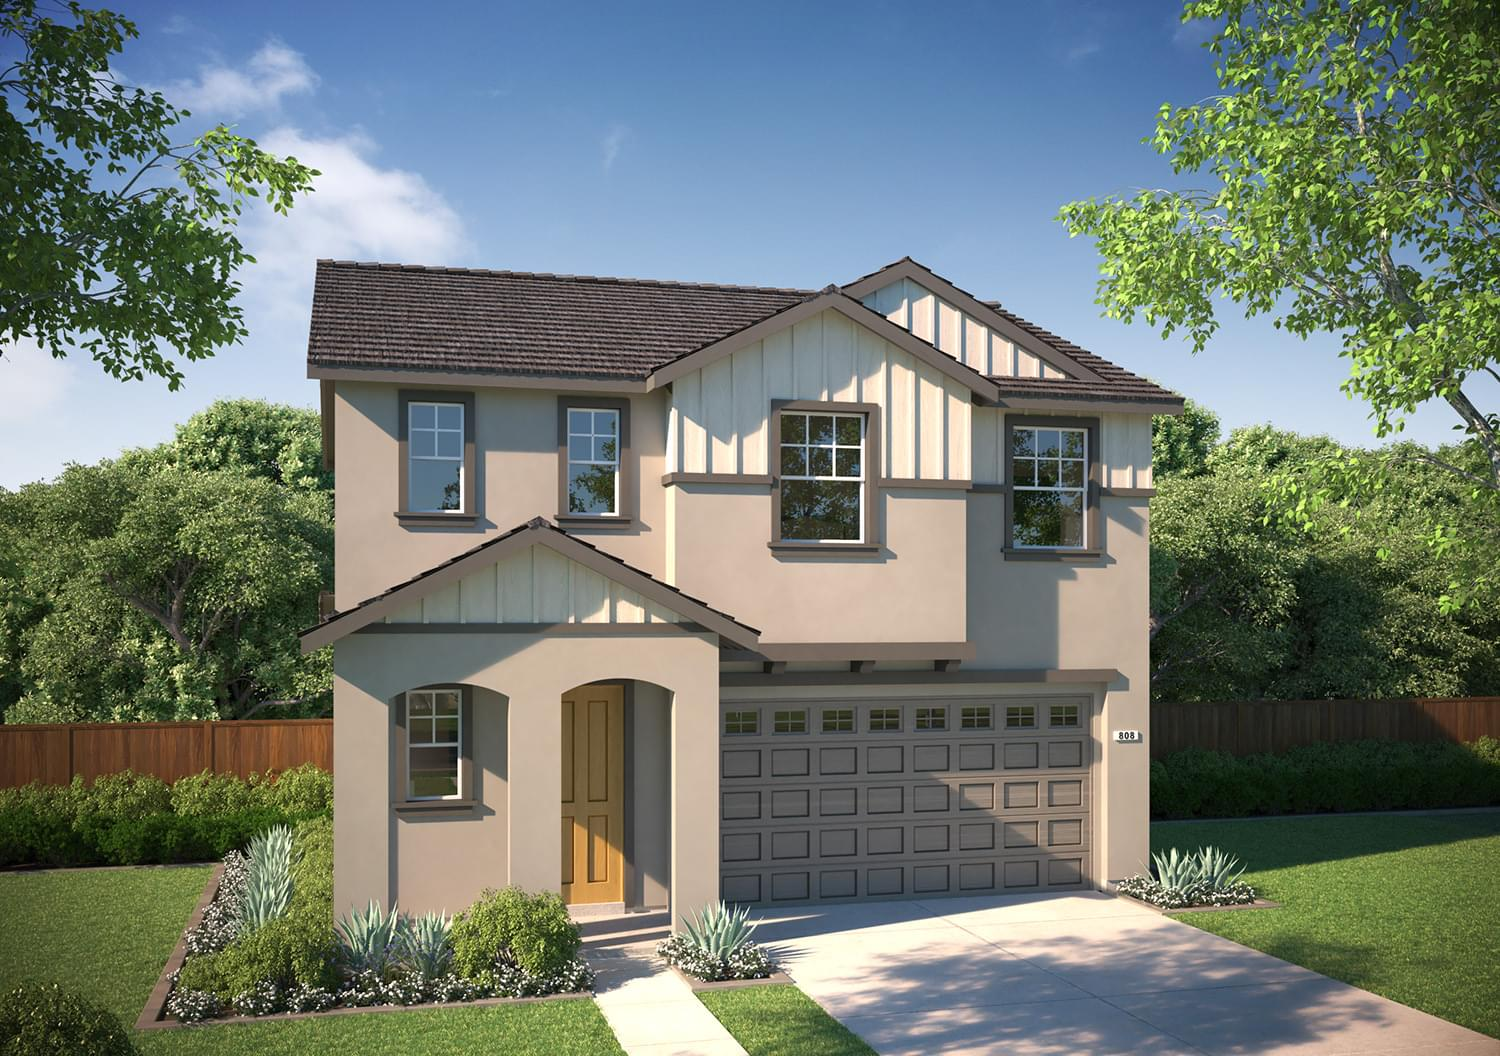 4460 Bahama Way in , CA by DeNova Homes